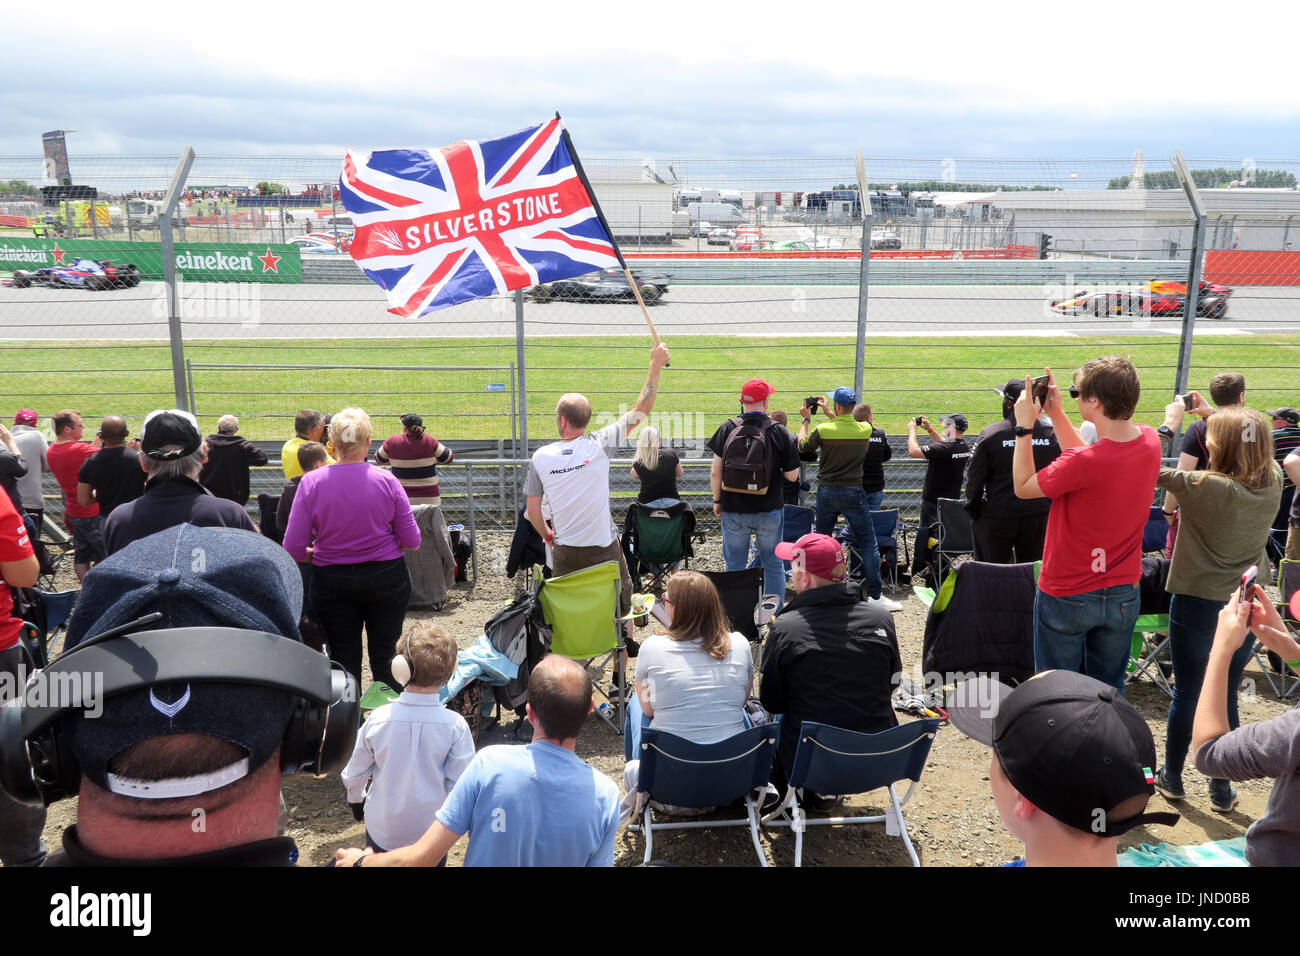 Silverstone Flag at Formula1 racing circuit Stock Photo